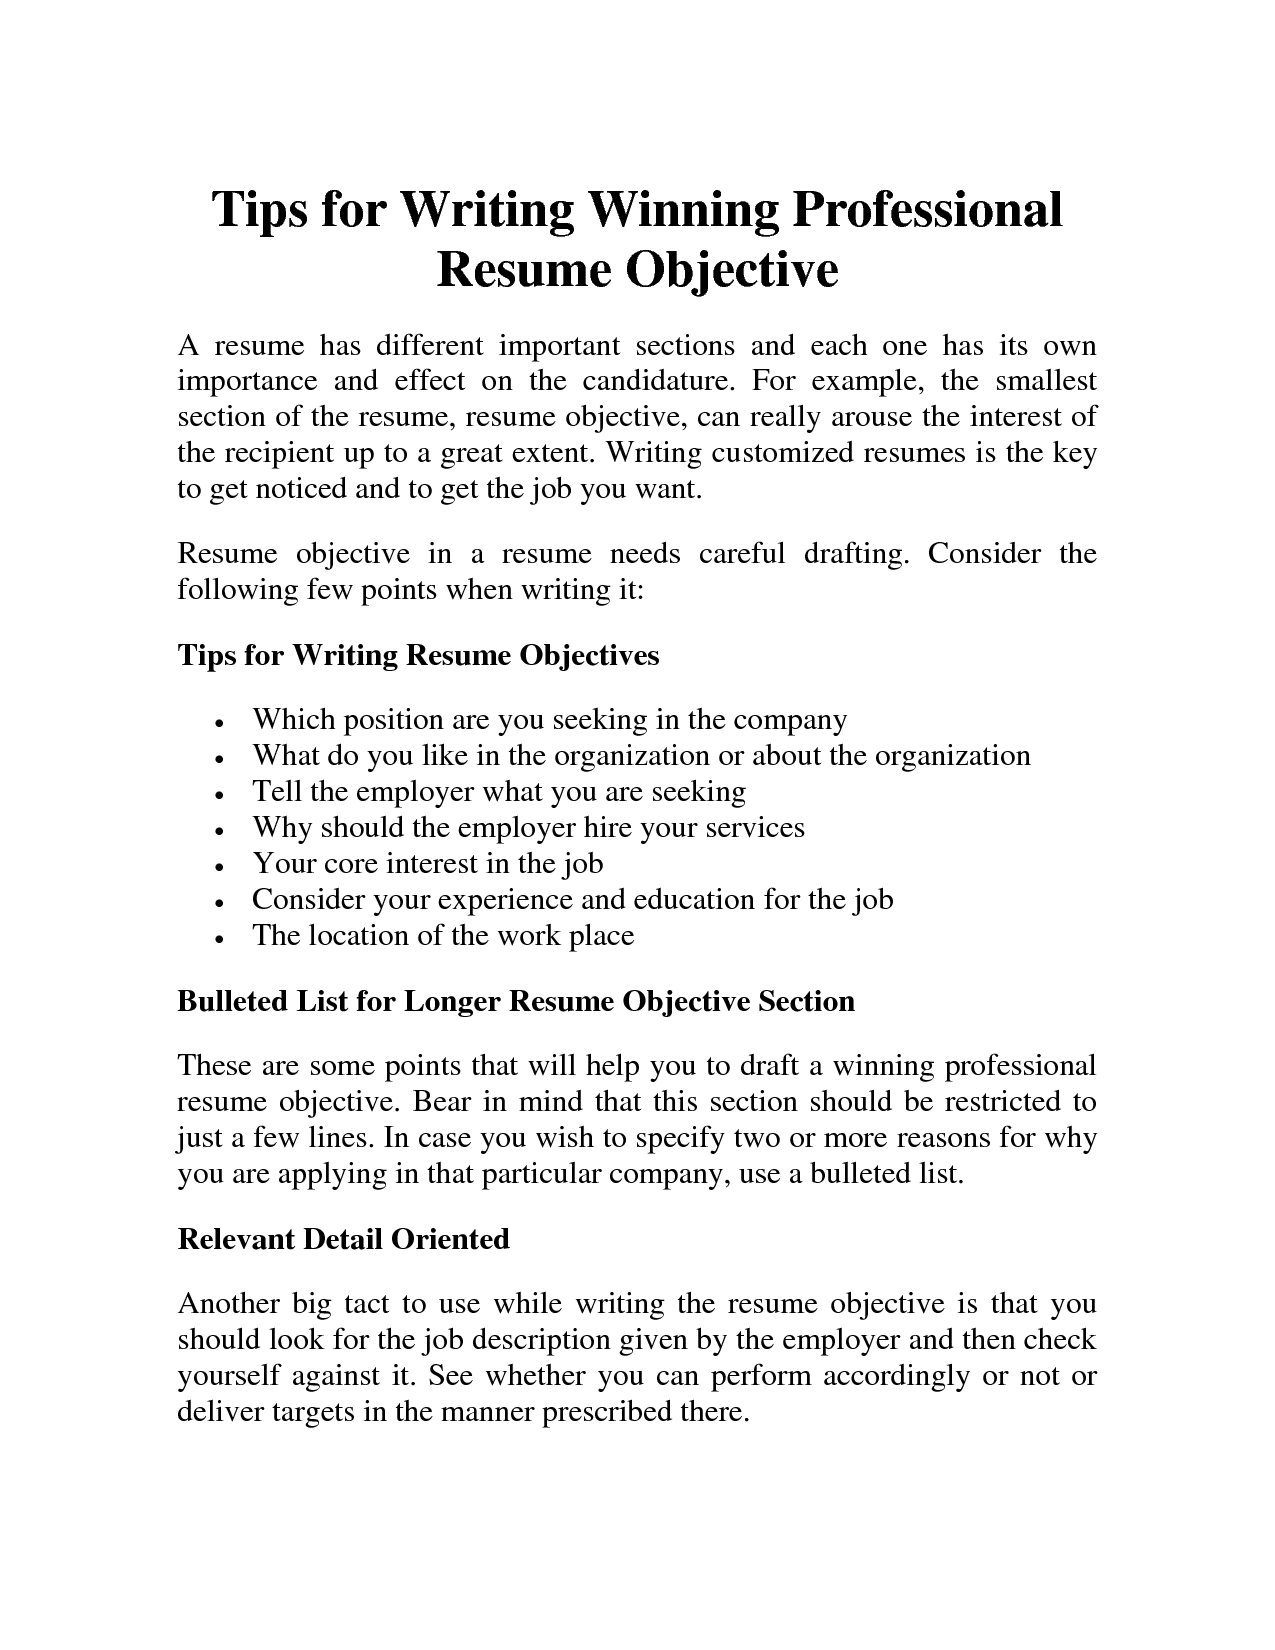 Best Way To Write An Objective For A Resume Professional Resume Objective Samplesprofessional Resume